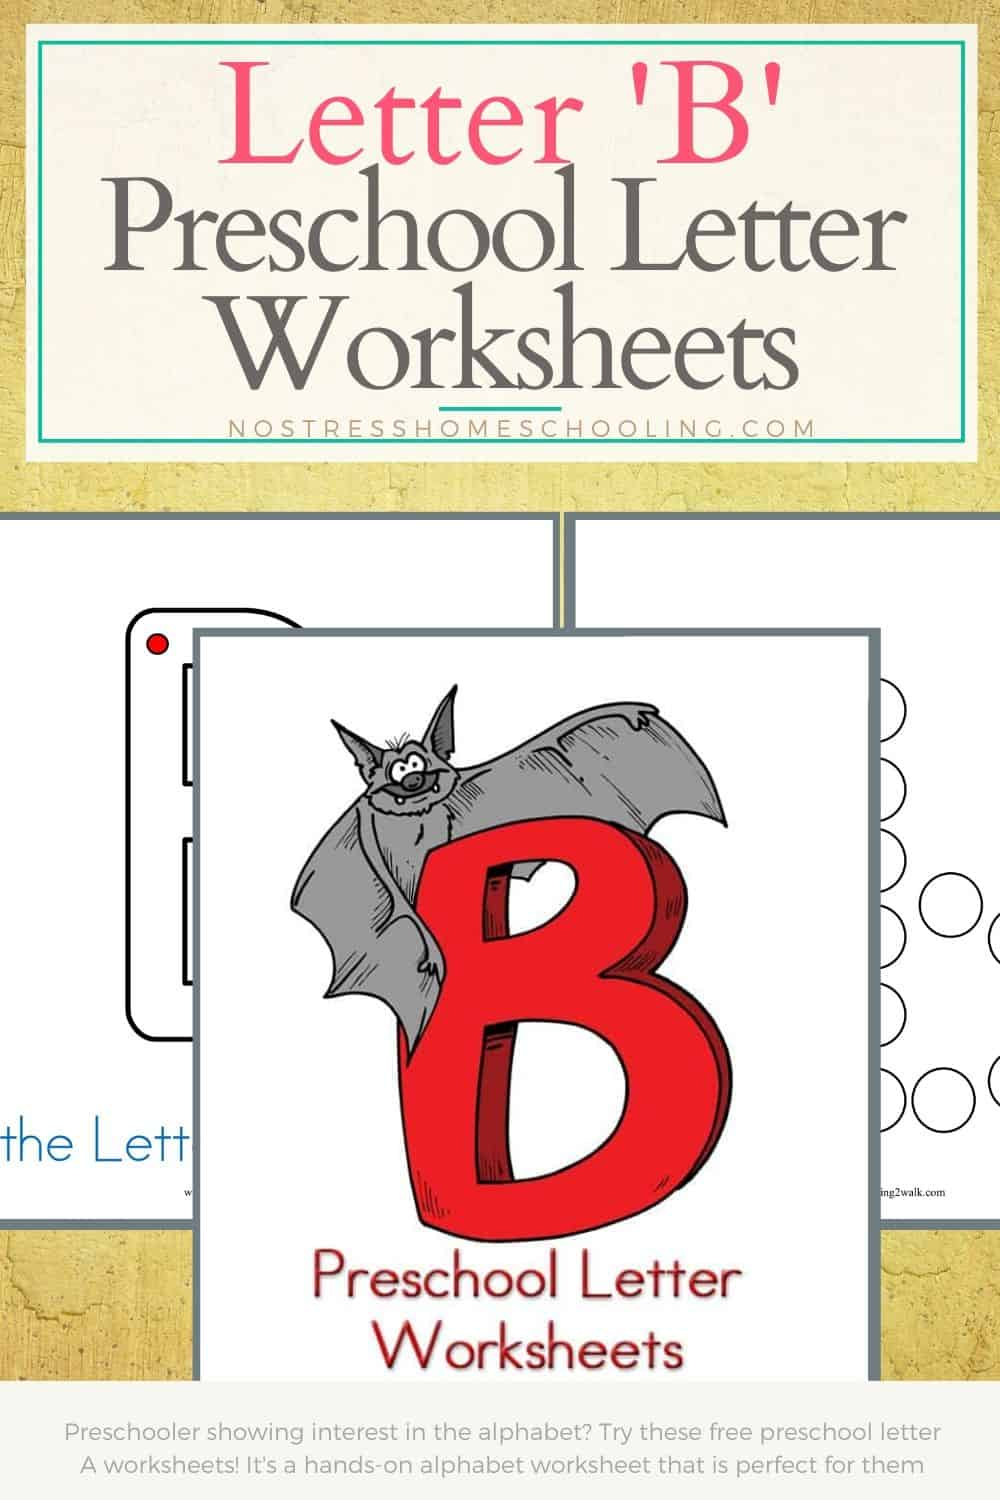 These preschool letter'b' worksheets are perfect for young learners!